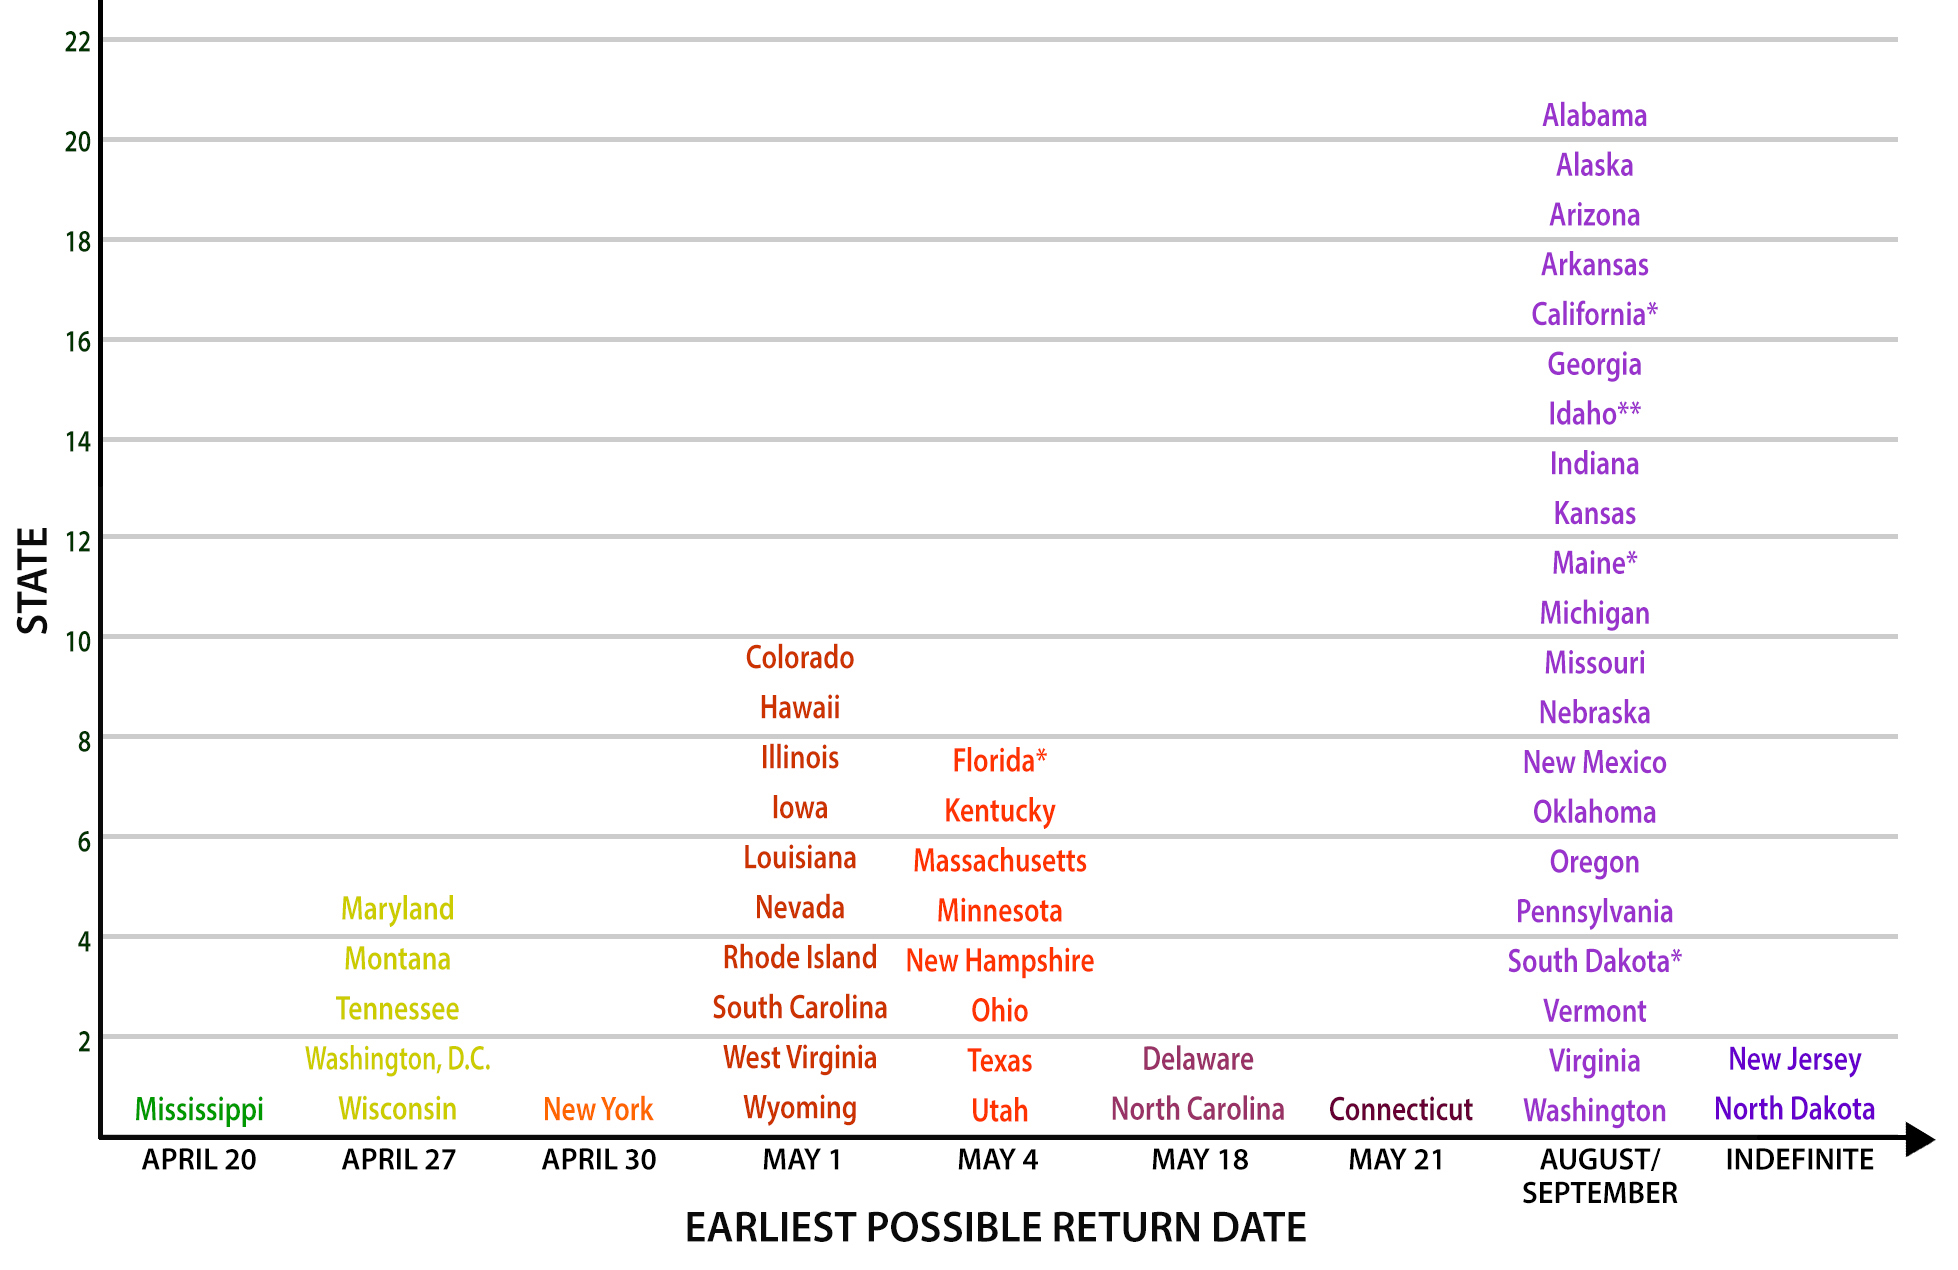 Graphic depicting earliest possible return date for schools by state